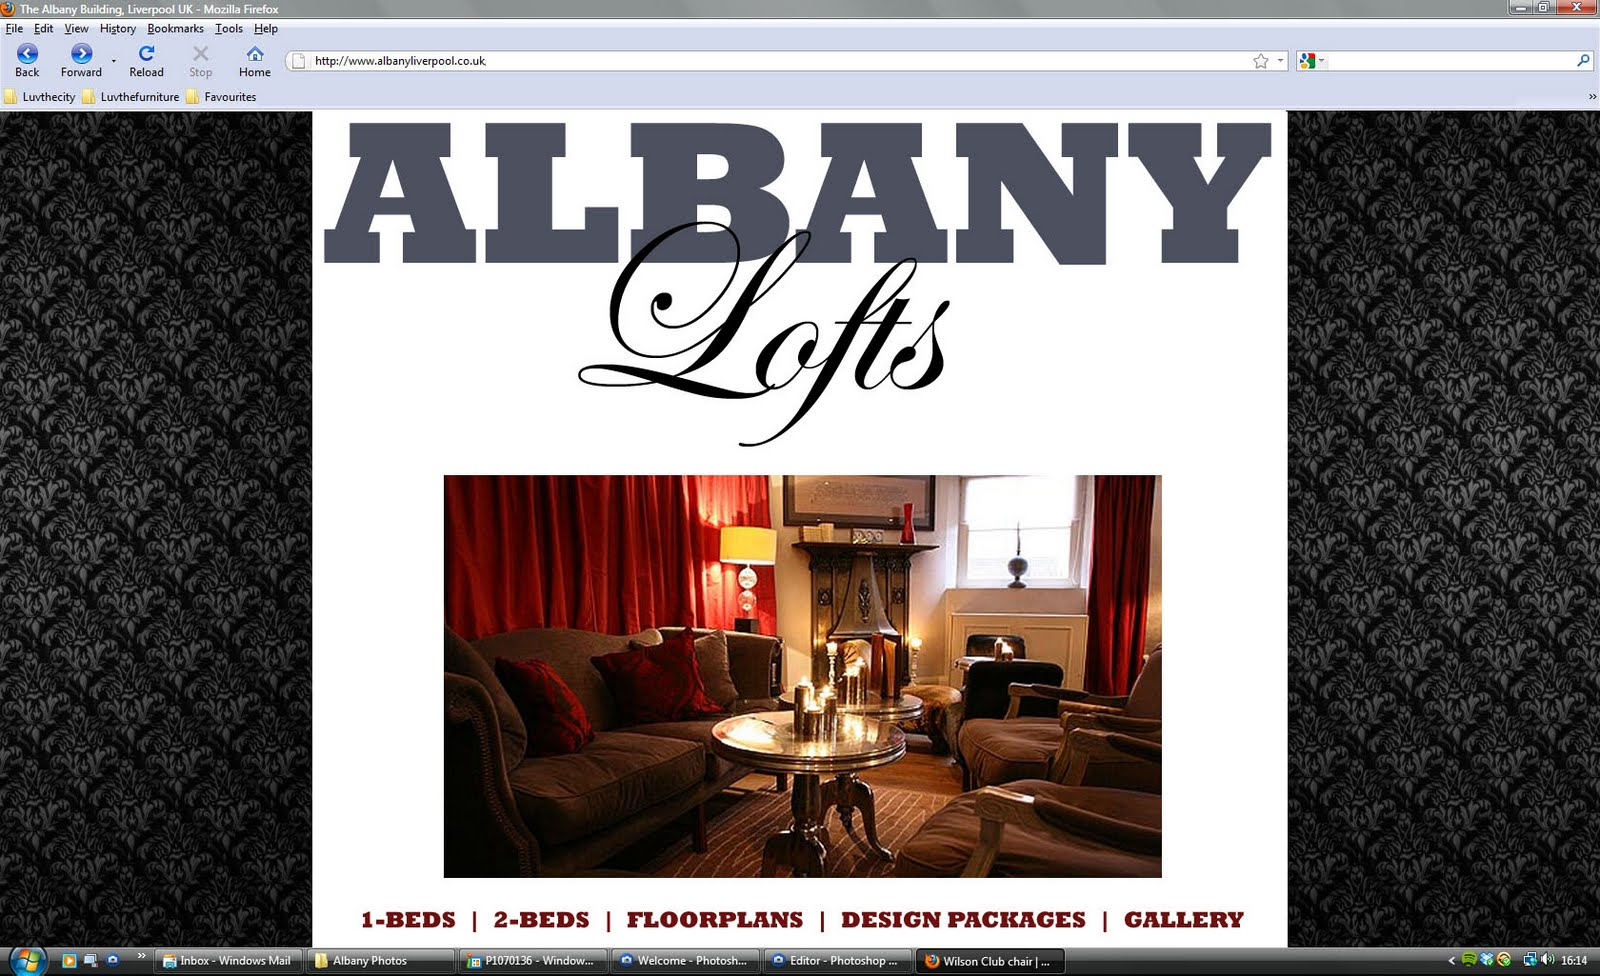 Marketing Ideas For Albany Building Liverpool The Albany